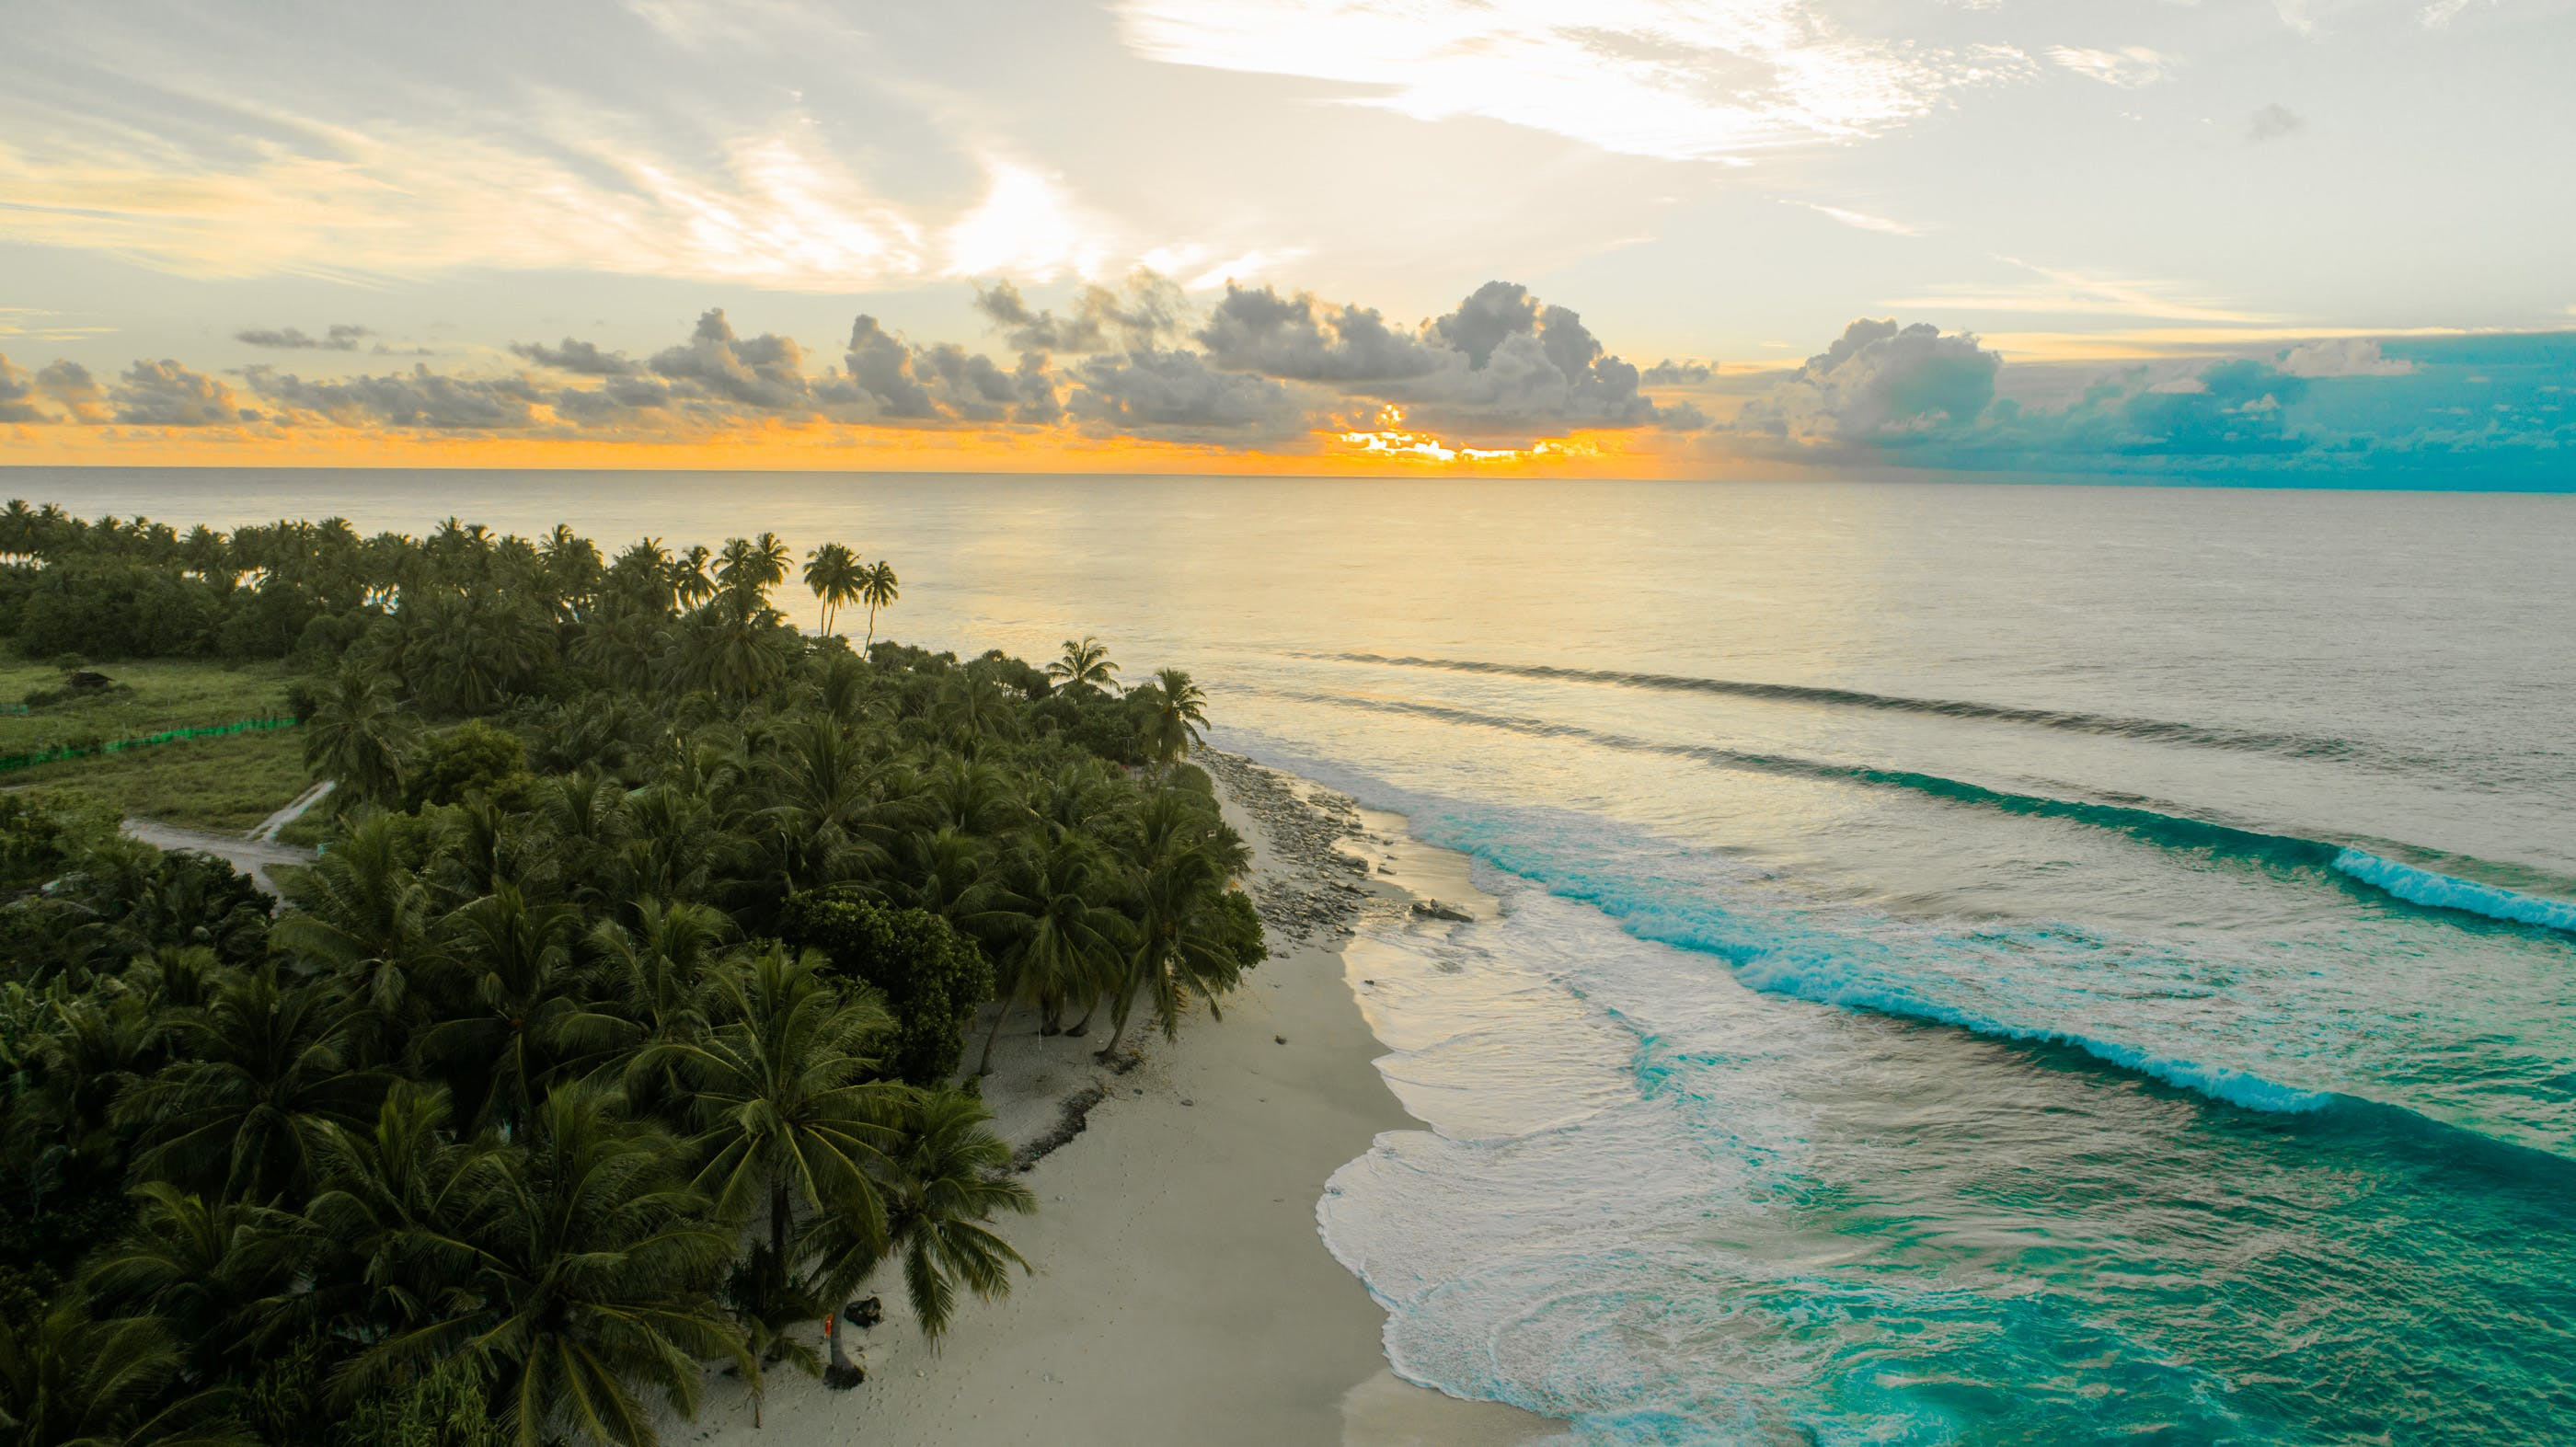 Aerial Photography of Green Palm Trees on Seashore at Golden Hour